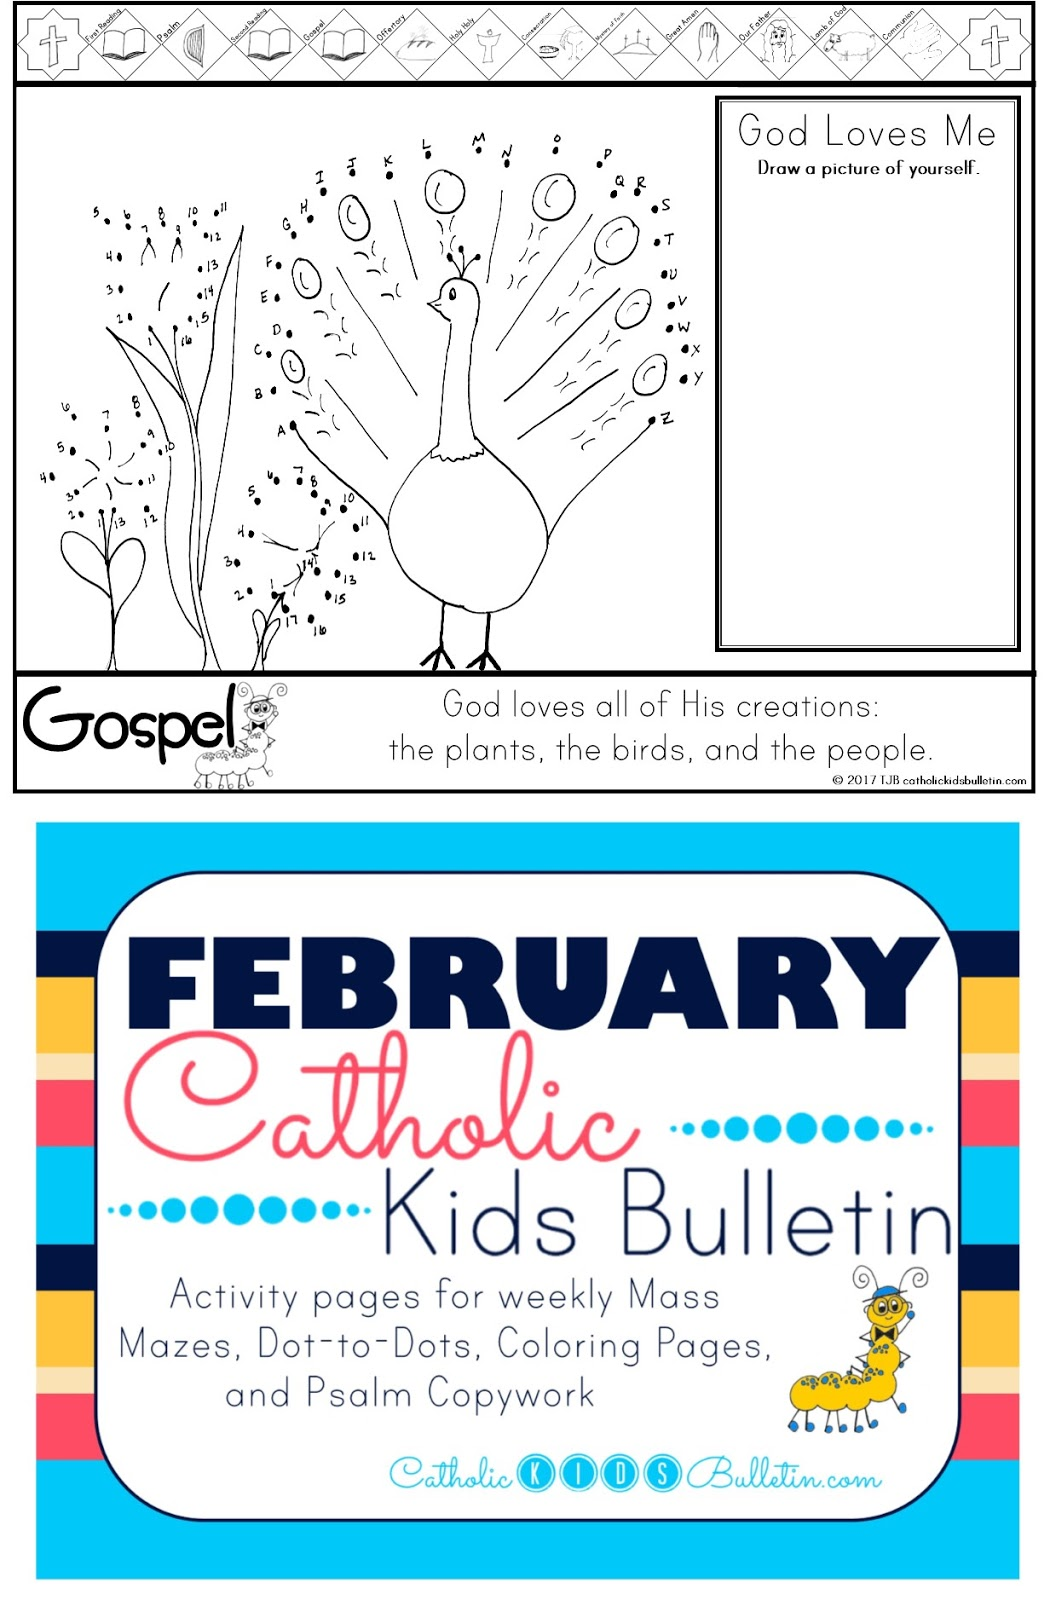 4 Birds Catholic Kids Bulletin Coloring Page Matthew 6.24-34